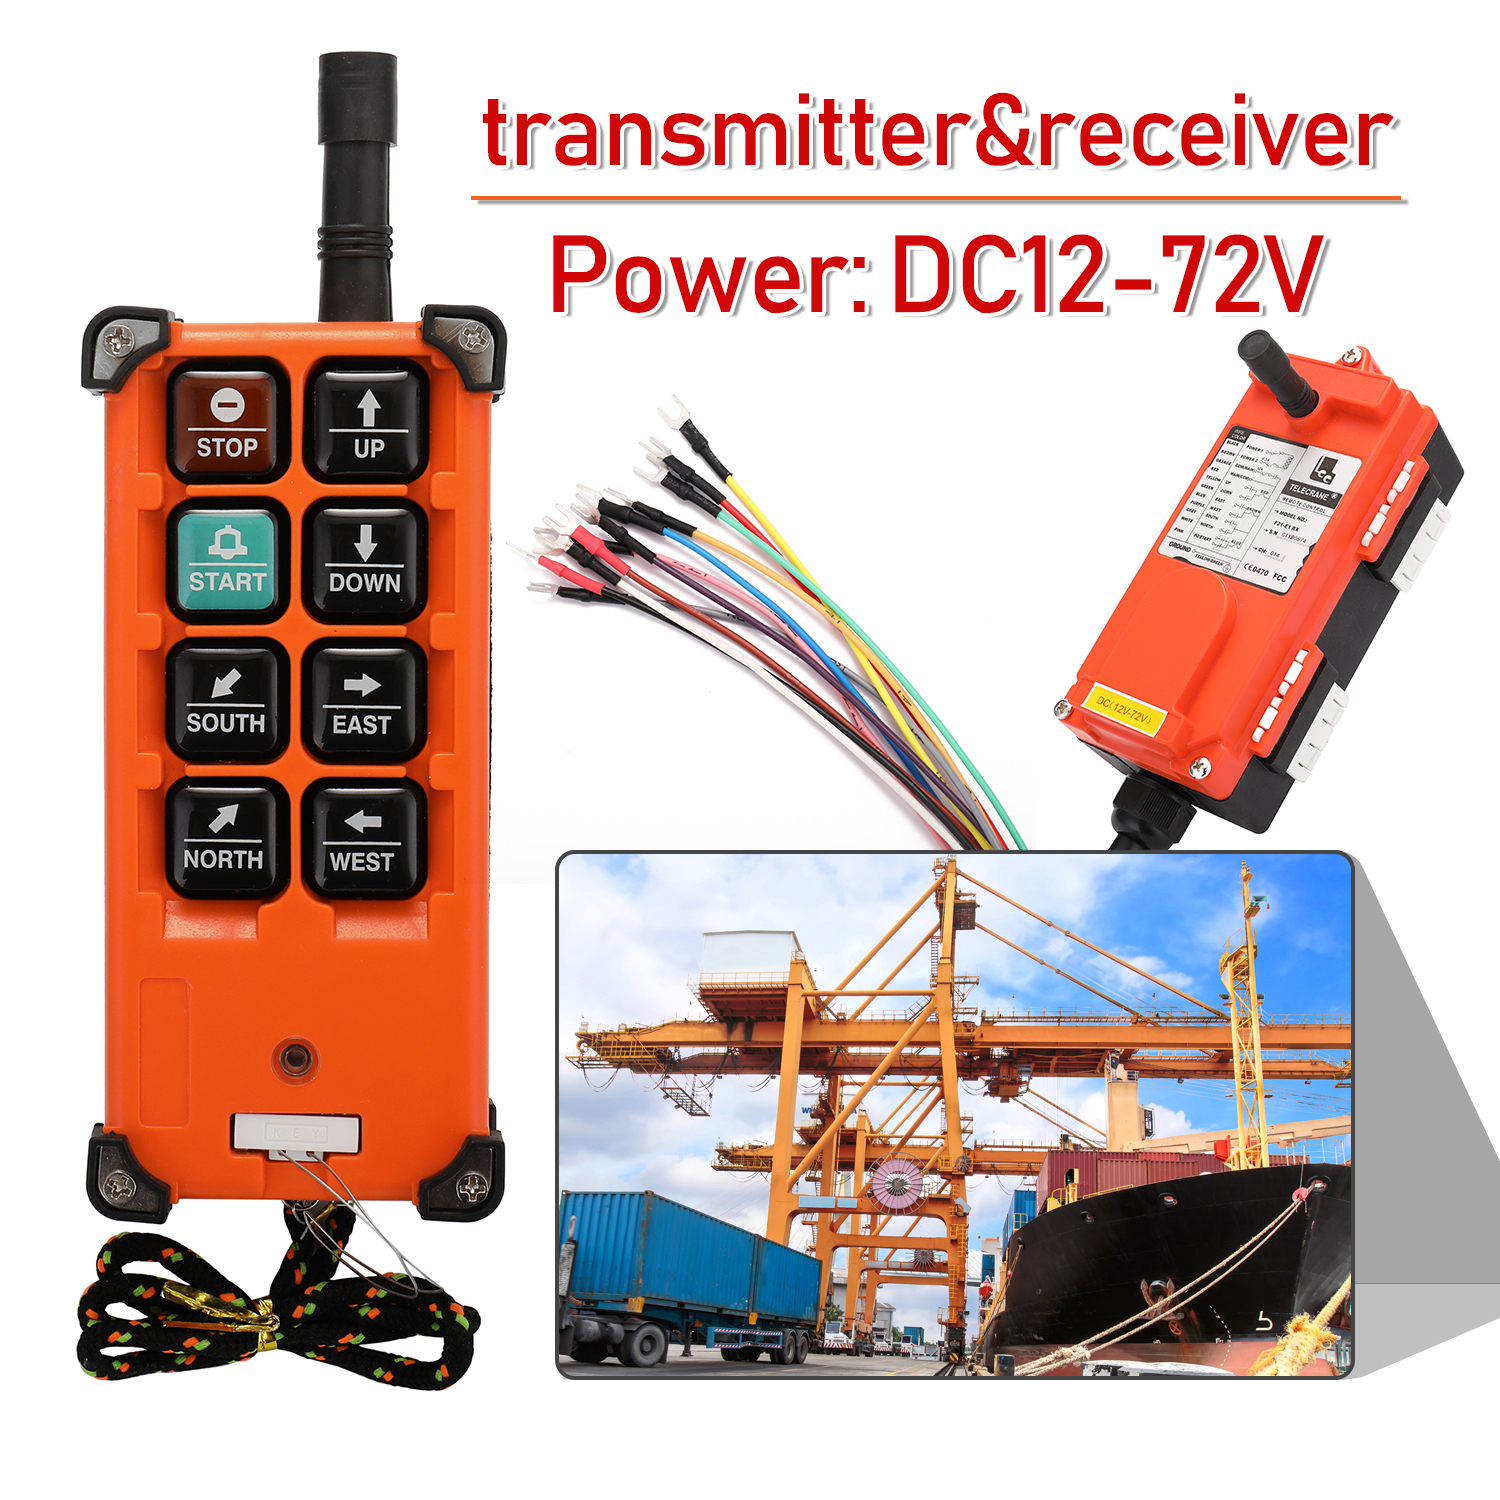 DC12-72V Industrial Remote Controller Switches Hoist Crane Control Lift Crane 1 Transmitter + 1 Receiver F21-E1B